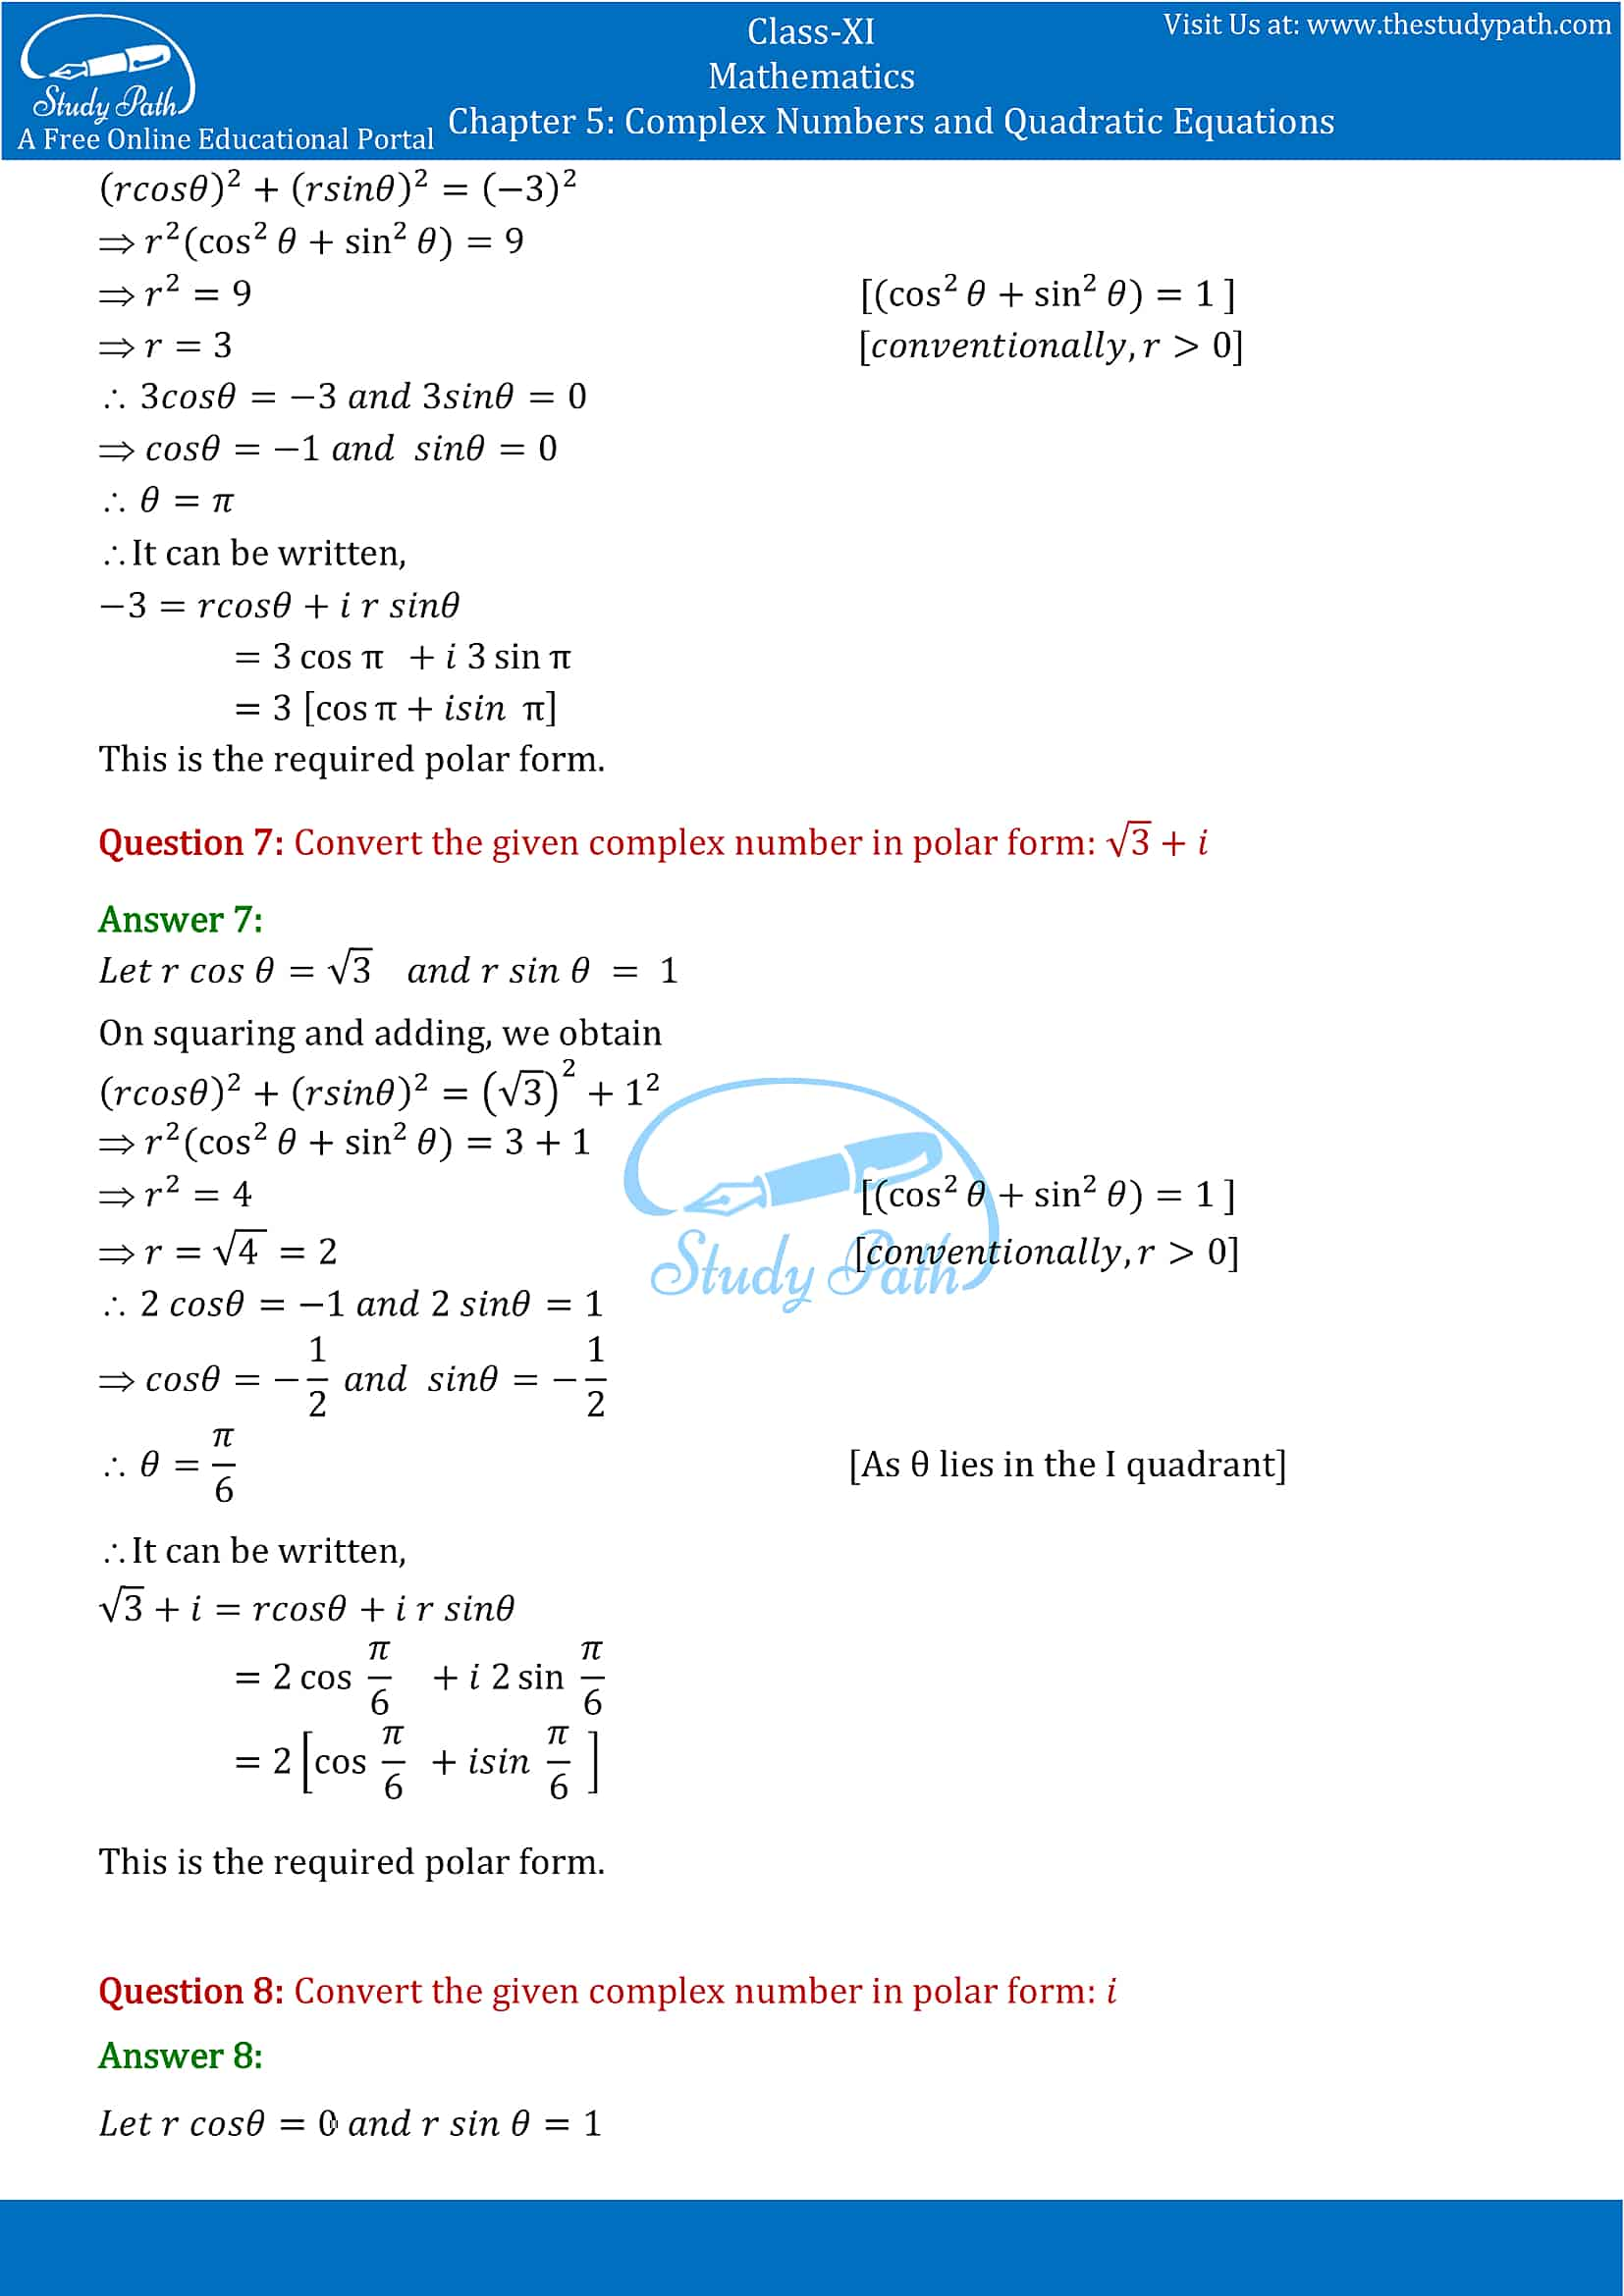 NCERT Solutions for Class 11 Maths chapter 5 Complex Numbers and Quadratic Equations Exercise 5.2 part-4